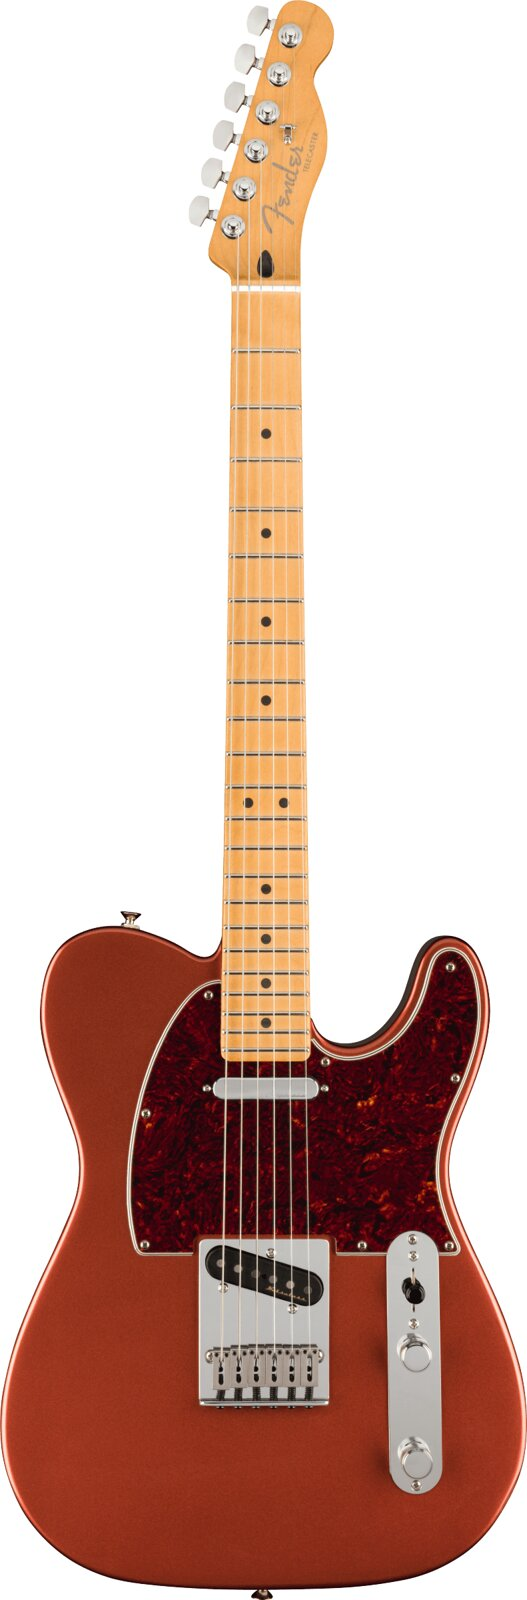 Fender Player Plus Telecaster, Maple Fingerboard, Aged Candy Apple Red : photo 1